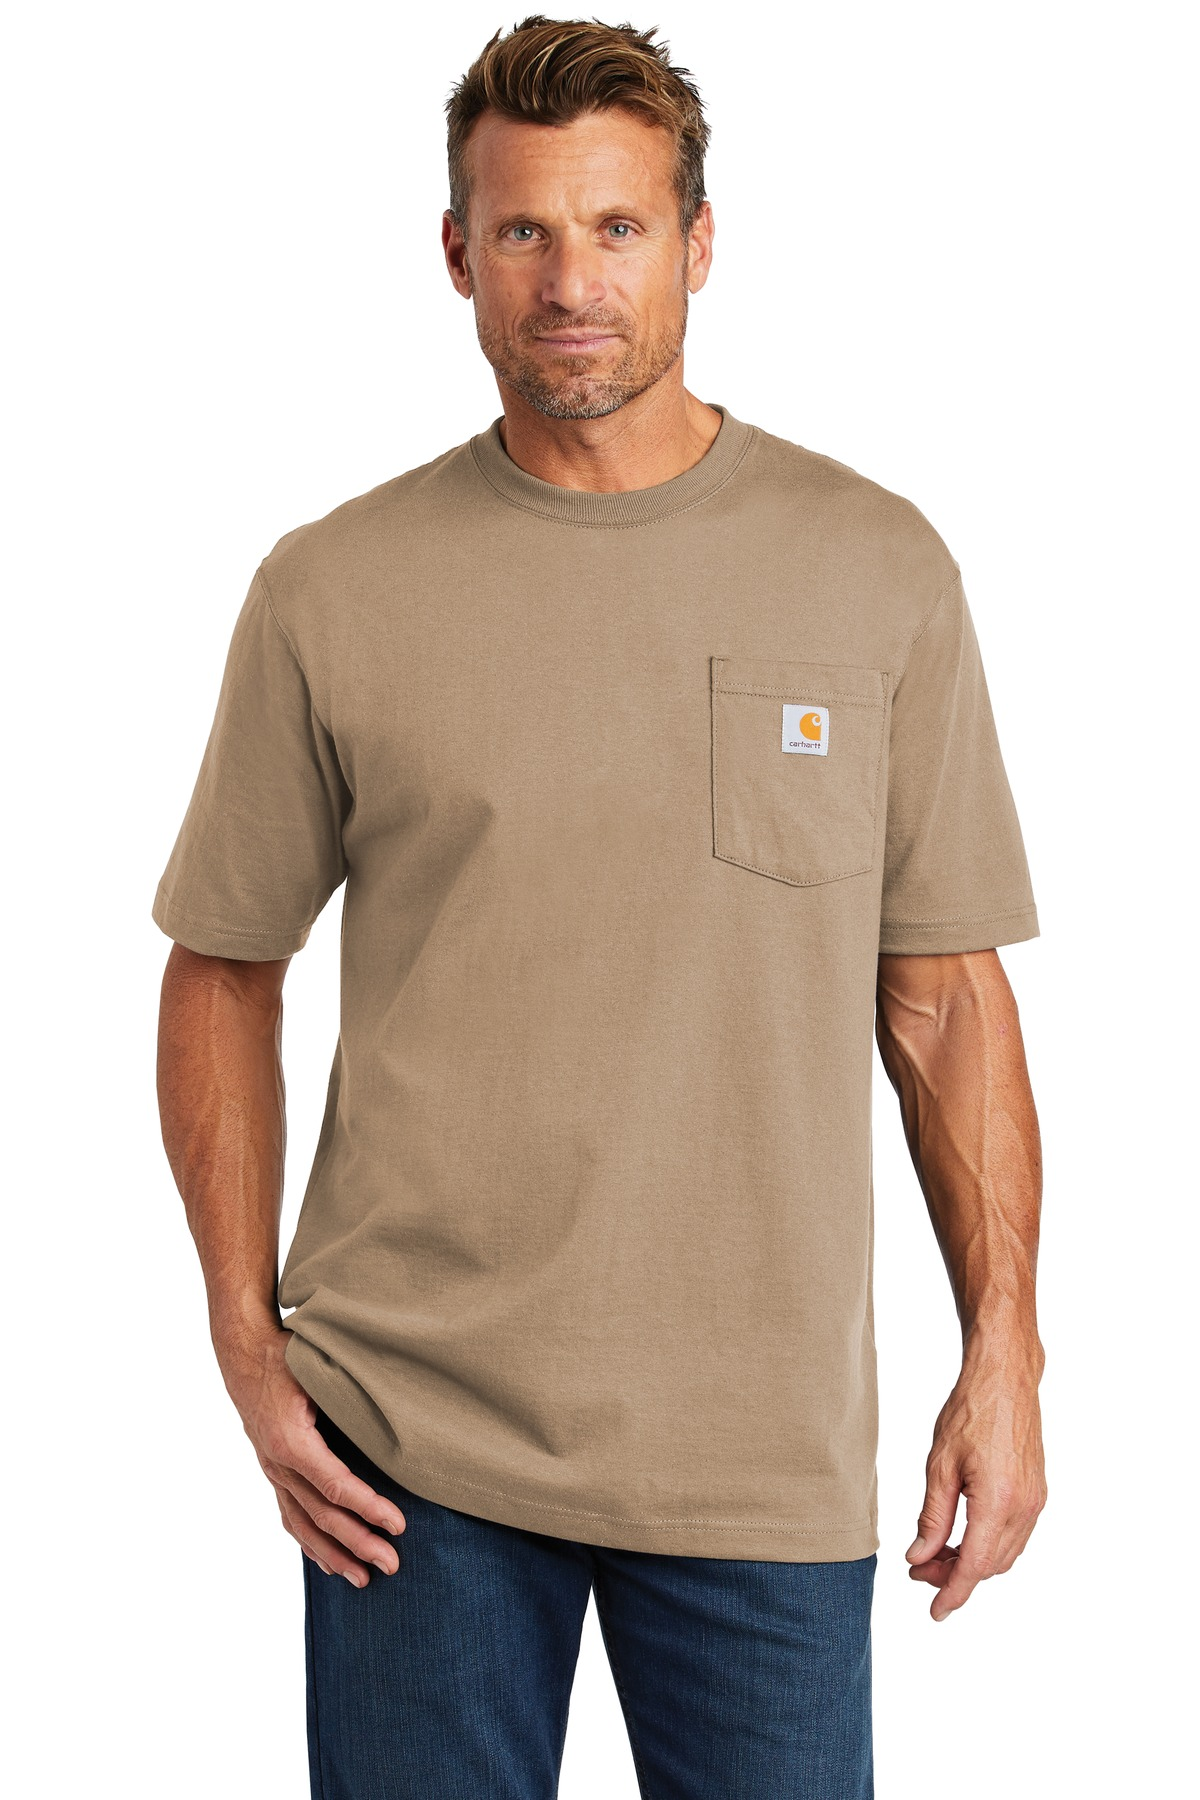 Carhartt  ®  Workwear Pocket Short Sleeve T-Shirt. CTK87 - Desert